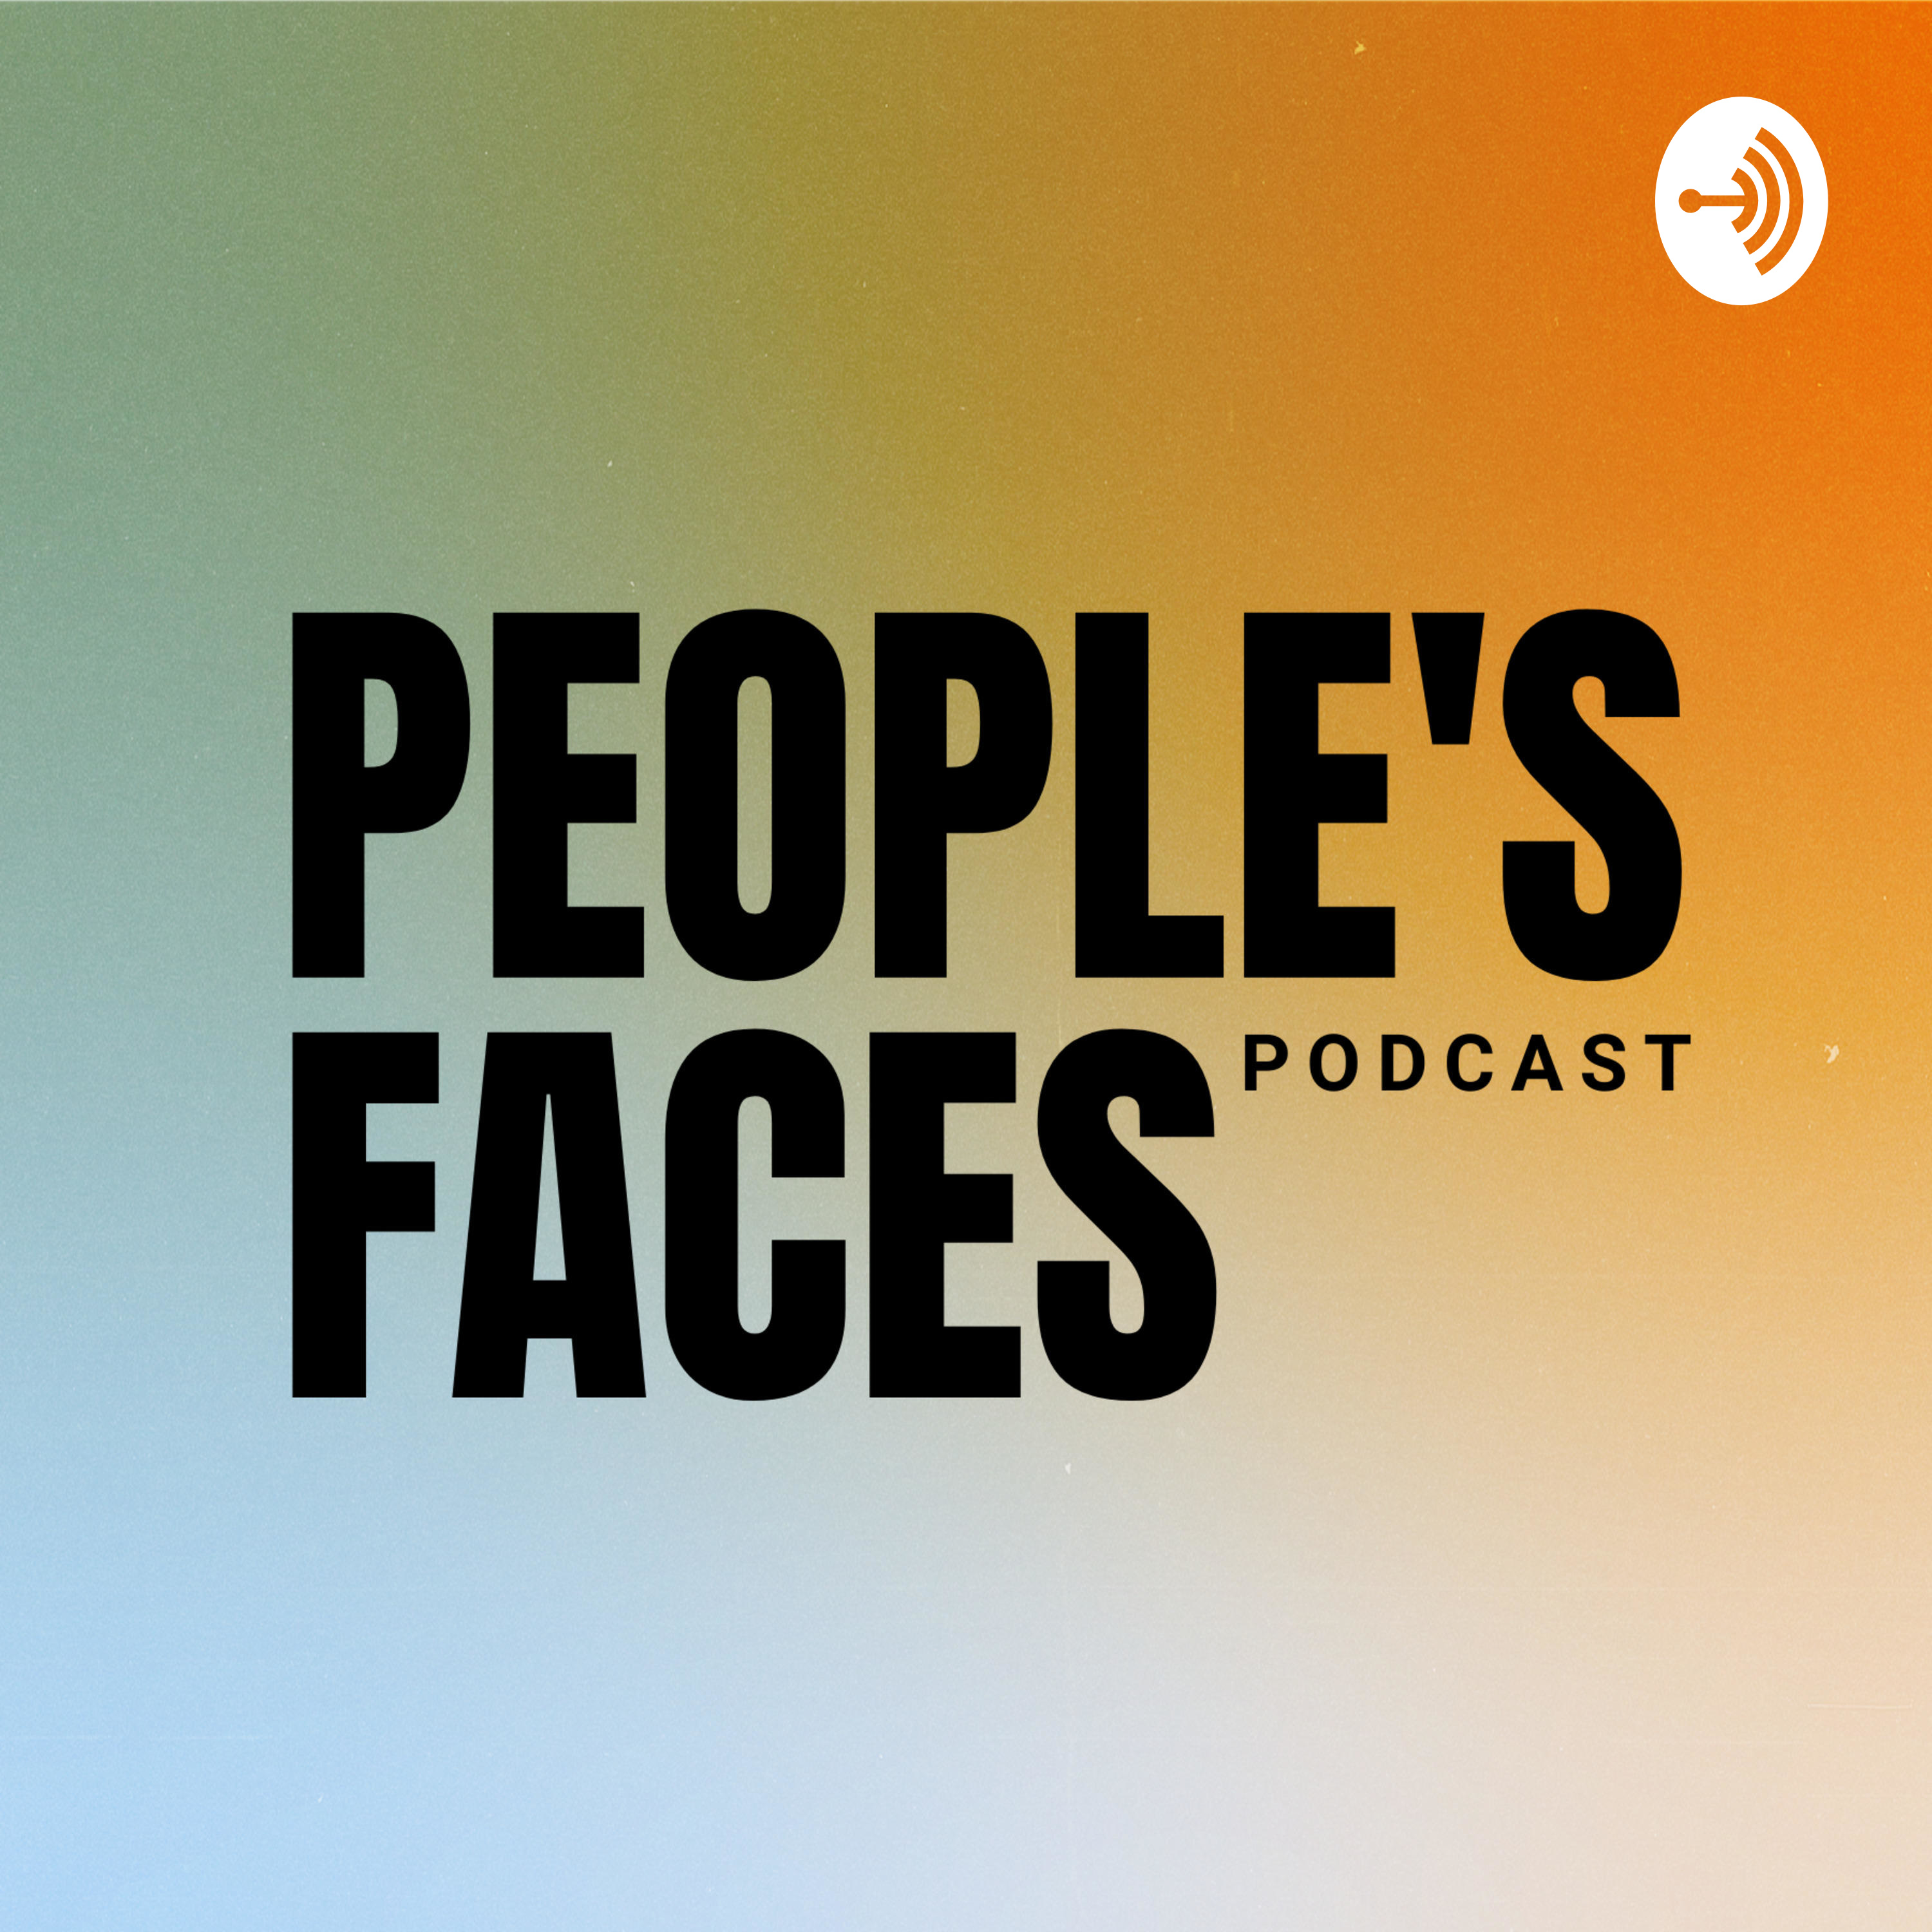 People's Faces Podcast logo